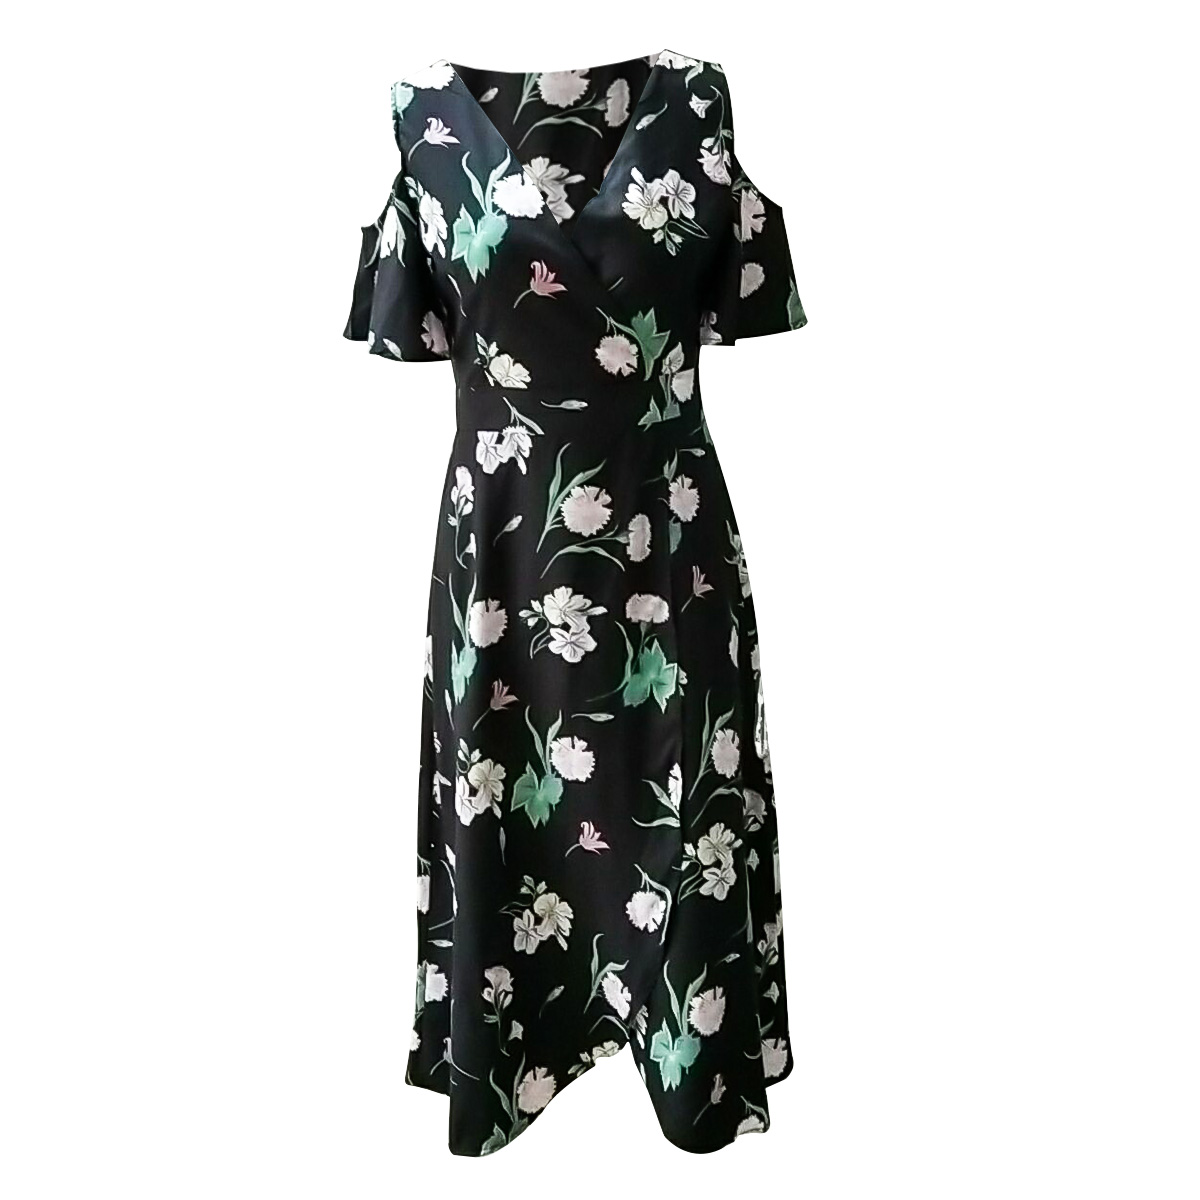 4639e5b89bd Aliexpress.com   Buy New Style Pregnant Women Floral Long Maxi Dresses  Maternity Gown Photography Photo Shoot Clothes Pregnancy Summer Beach  Sundress from ...